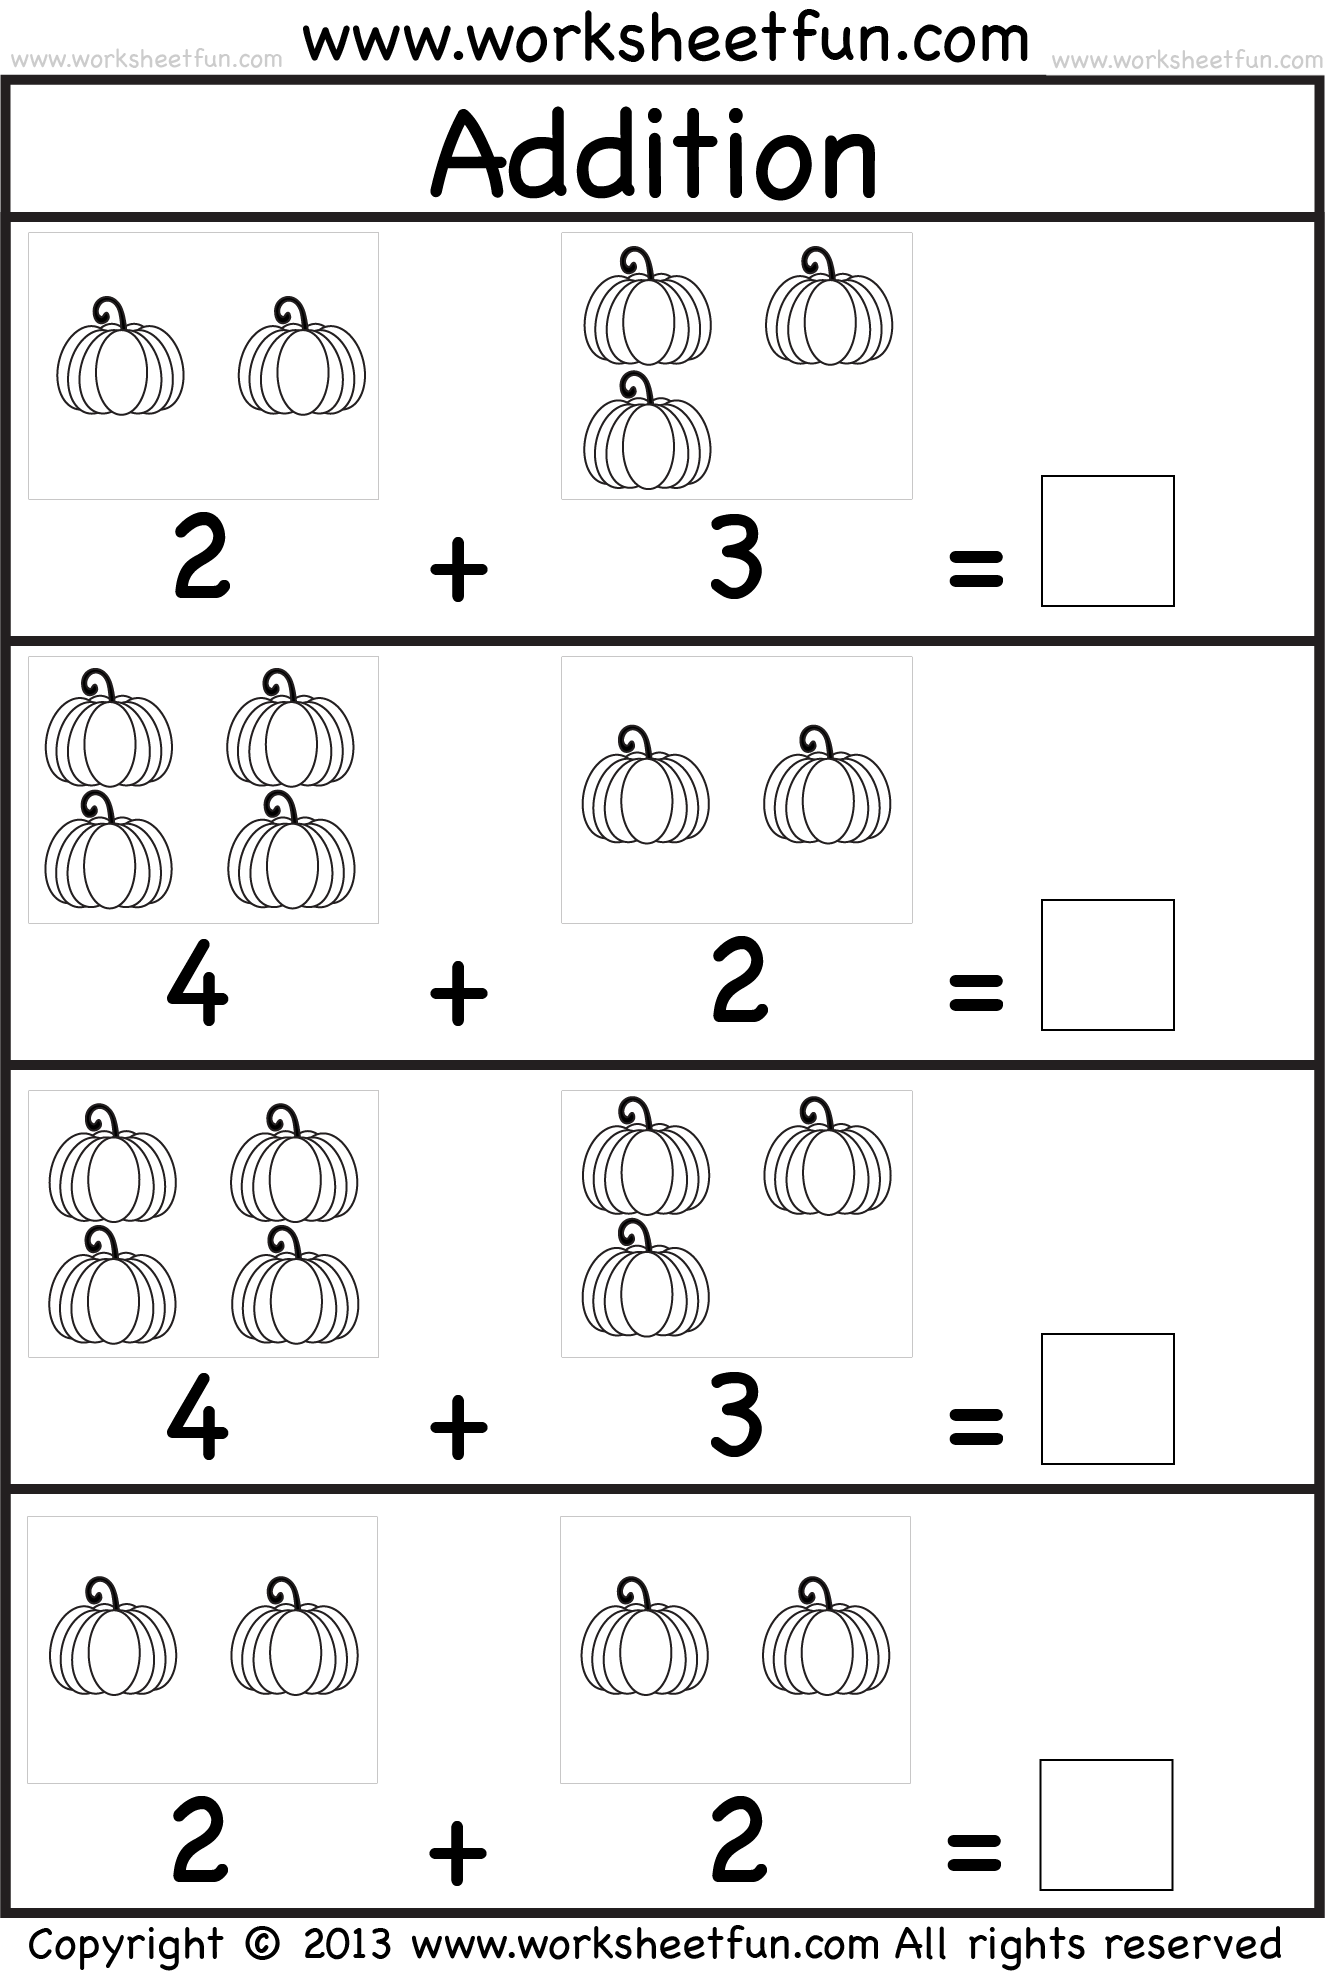 worksheet Addition And Subtraction Worksheets For Kindergarten kids practice adding single digit numbers and writing the sums on this ocean themed